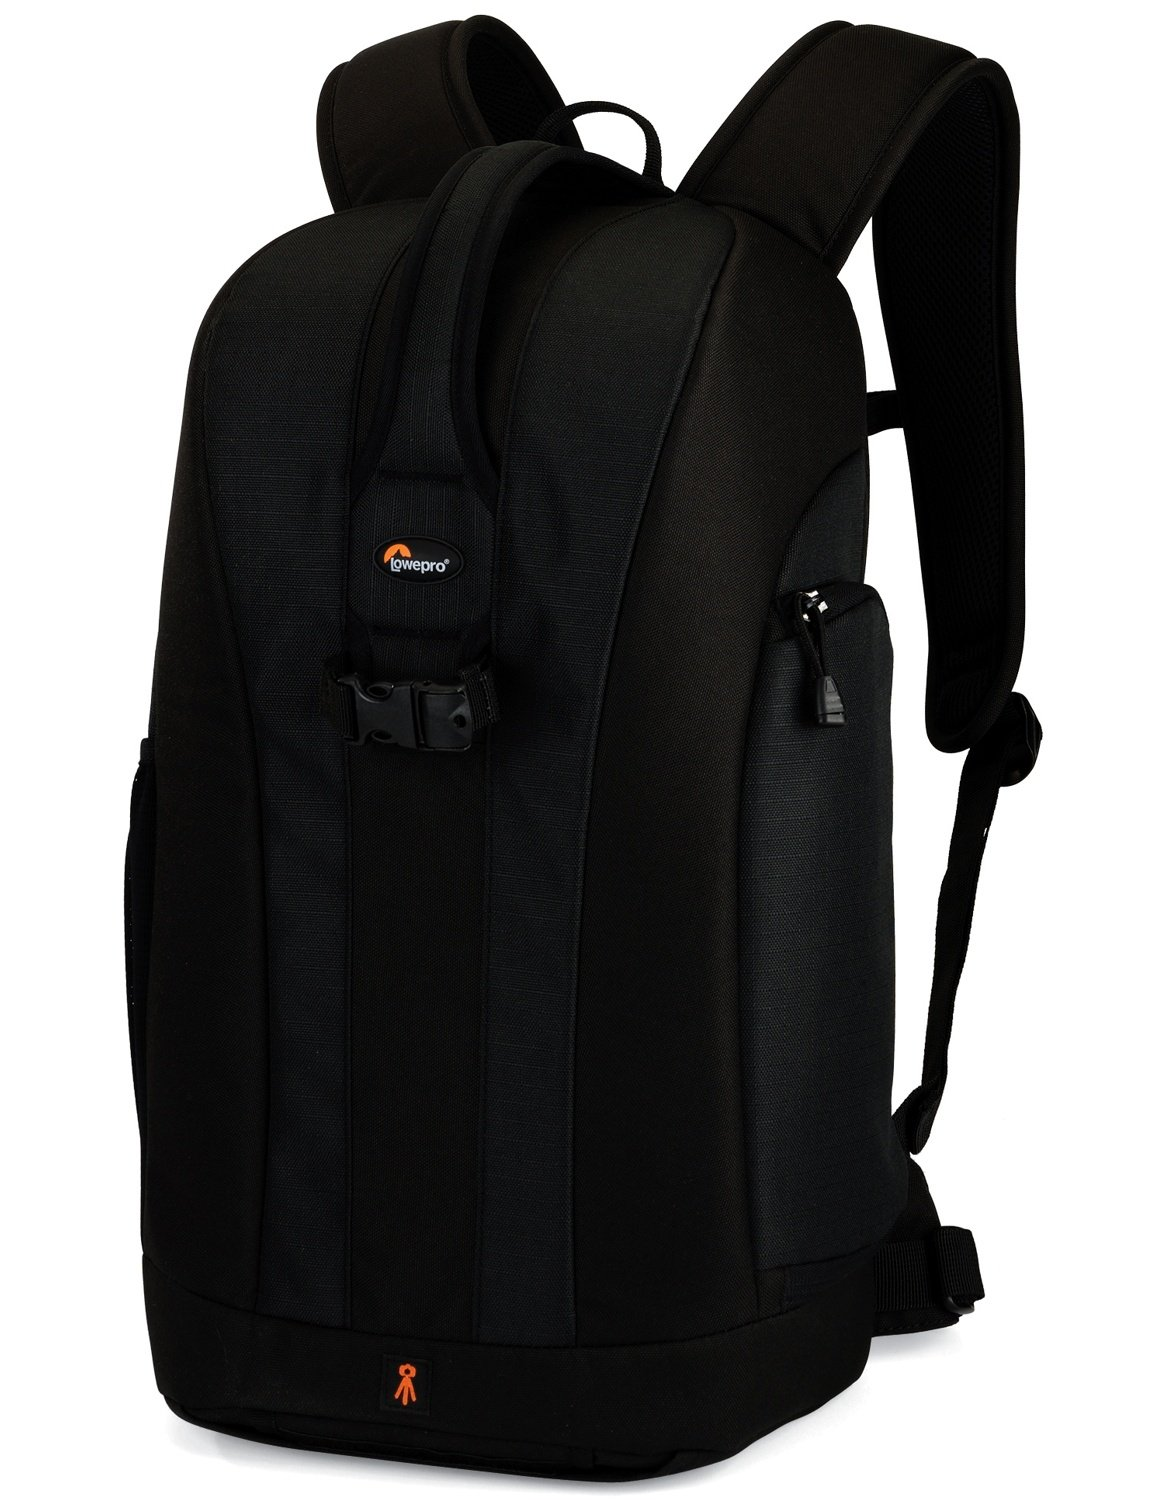 Lowepro Flipside 300 DSLR Camera Backpack